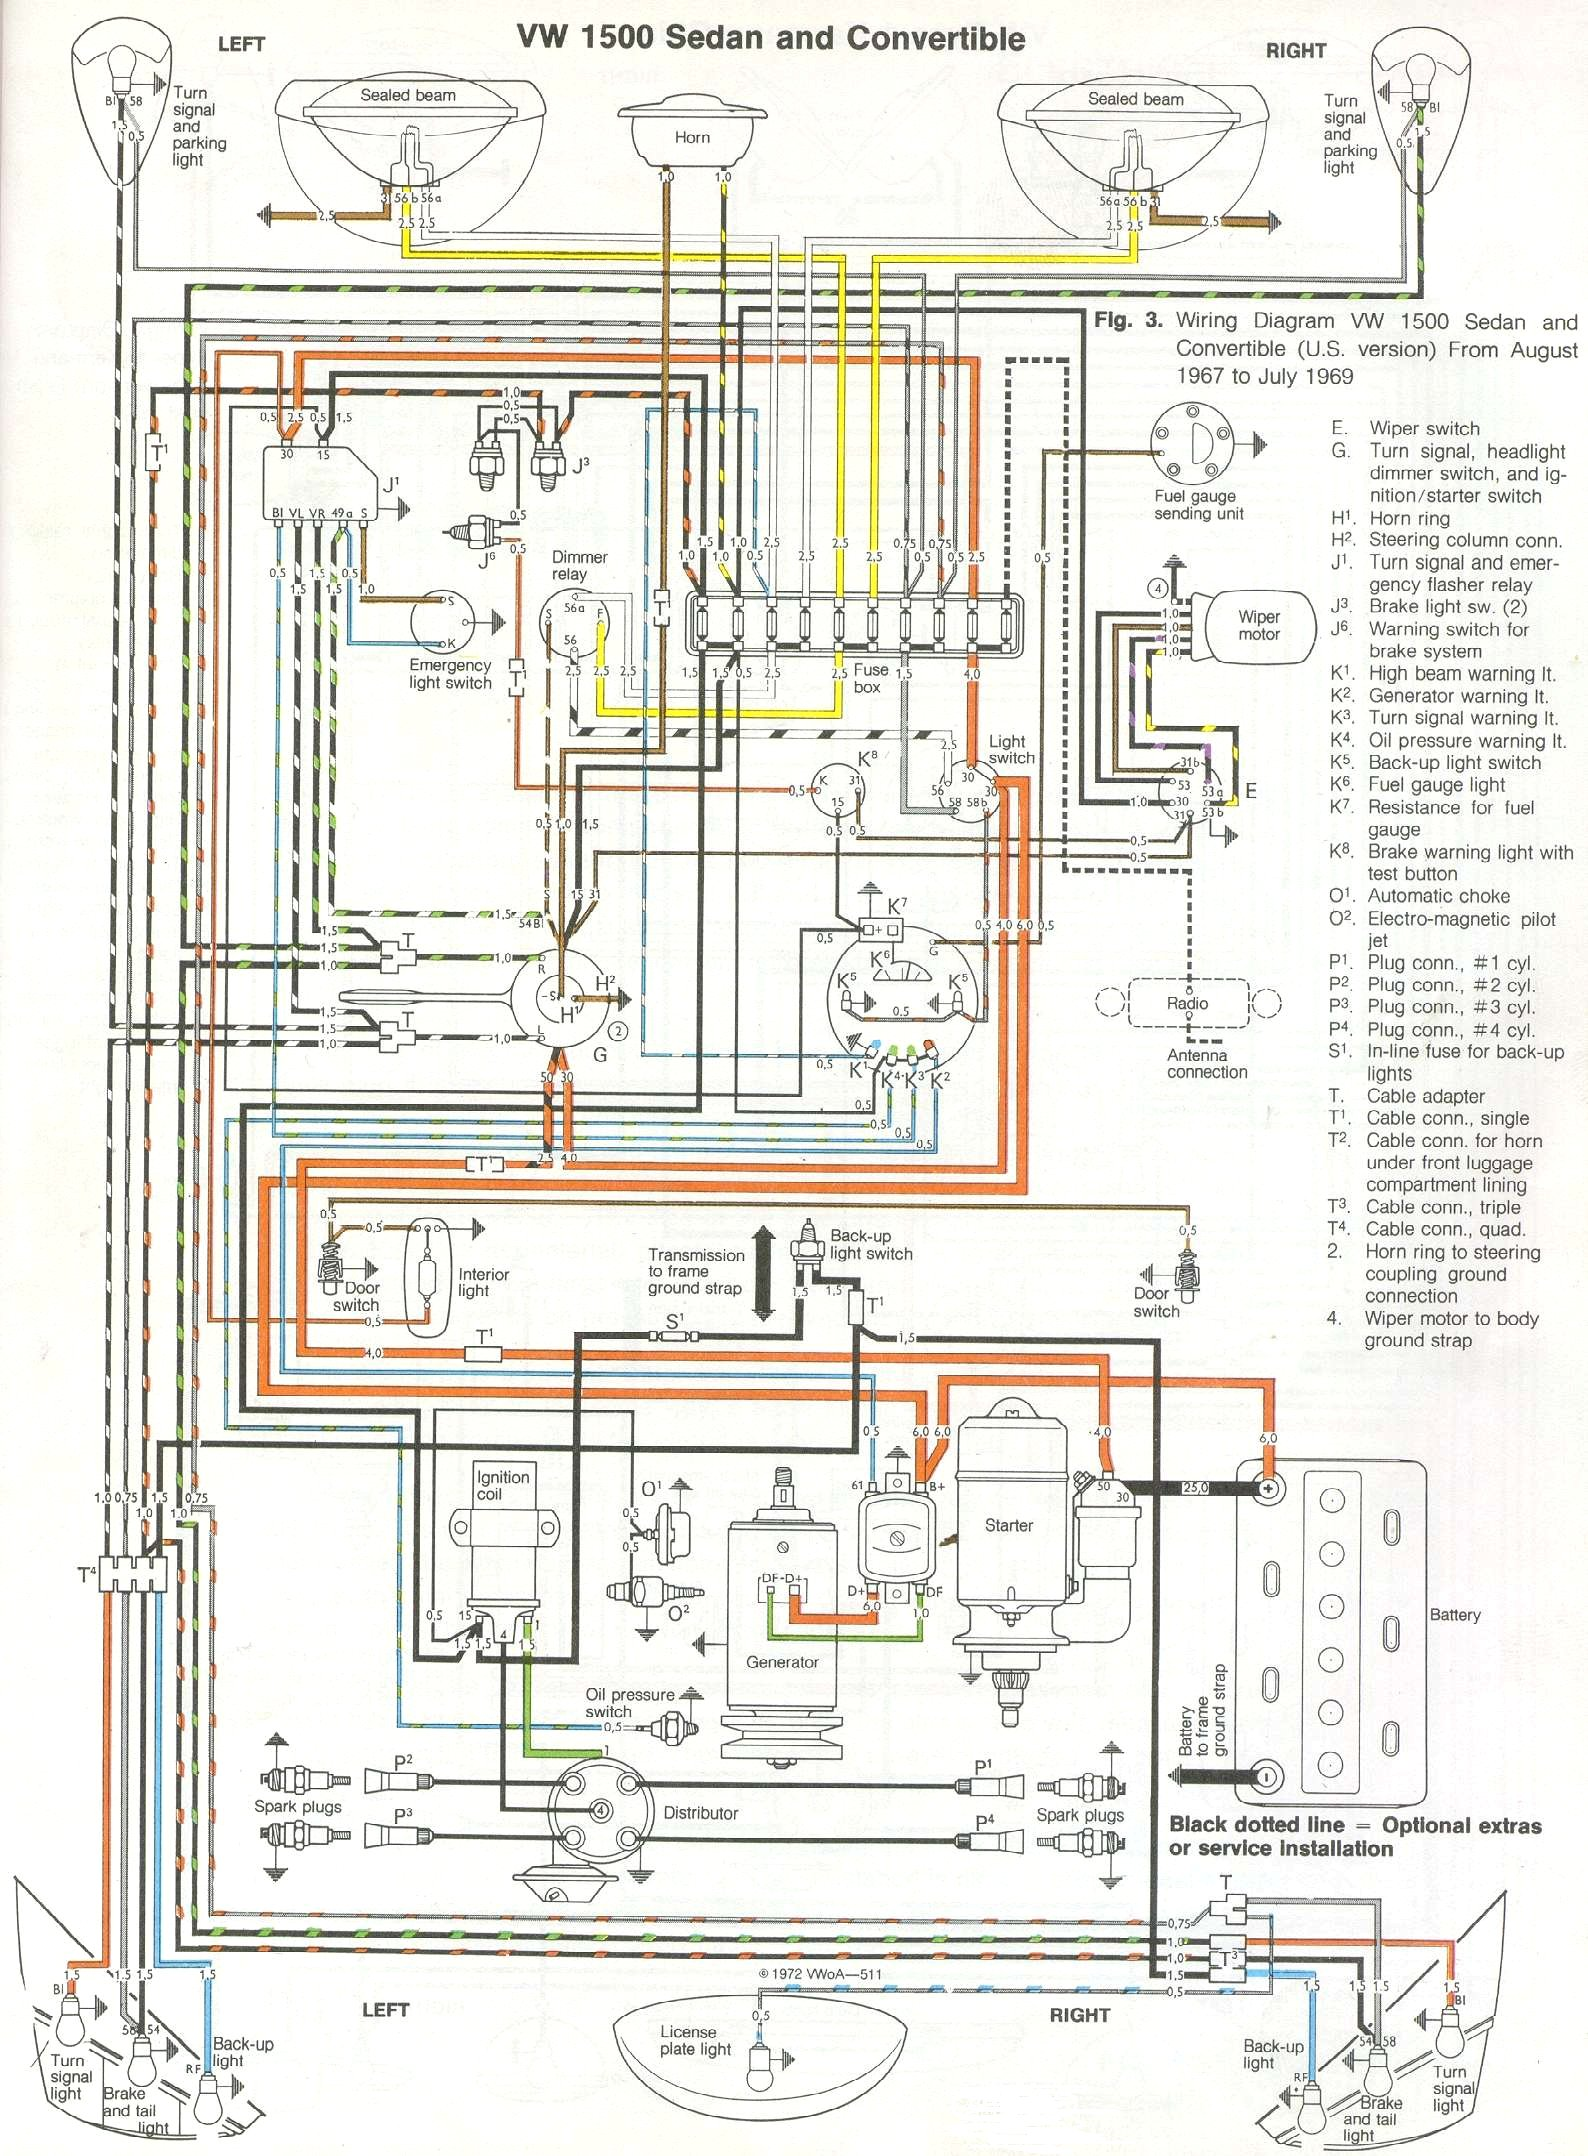 bug_6869 1969 71 beetle wiring diagram thegoldenbug com vw engine wiring diagram at nearapp.co